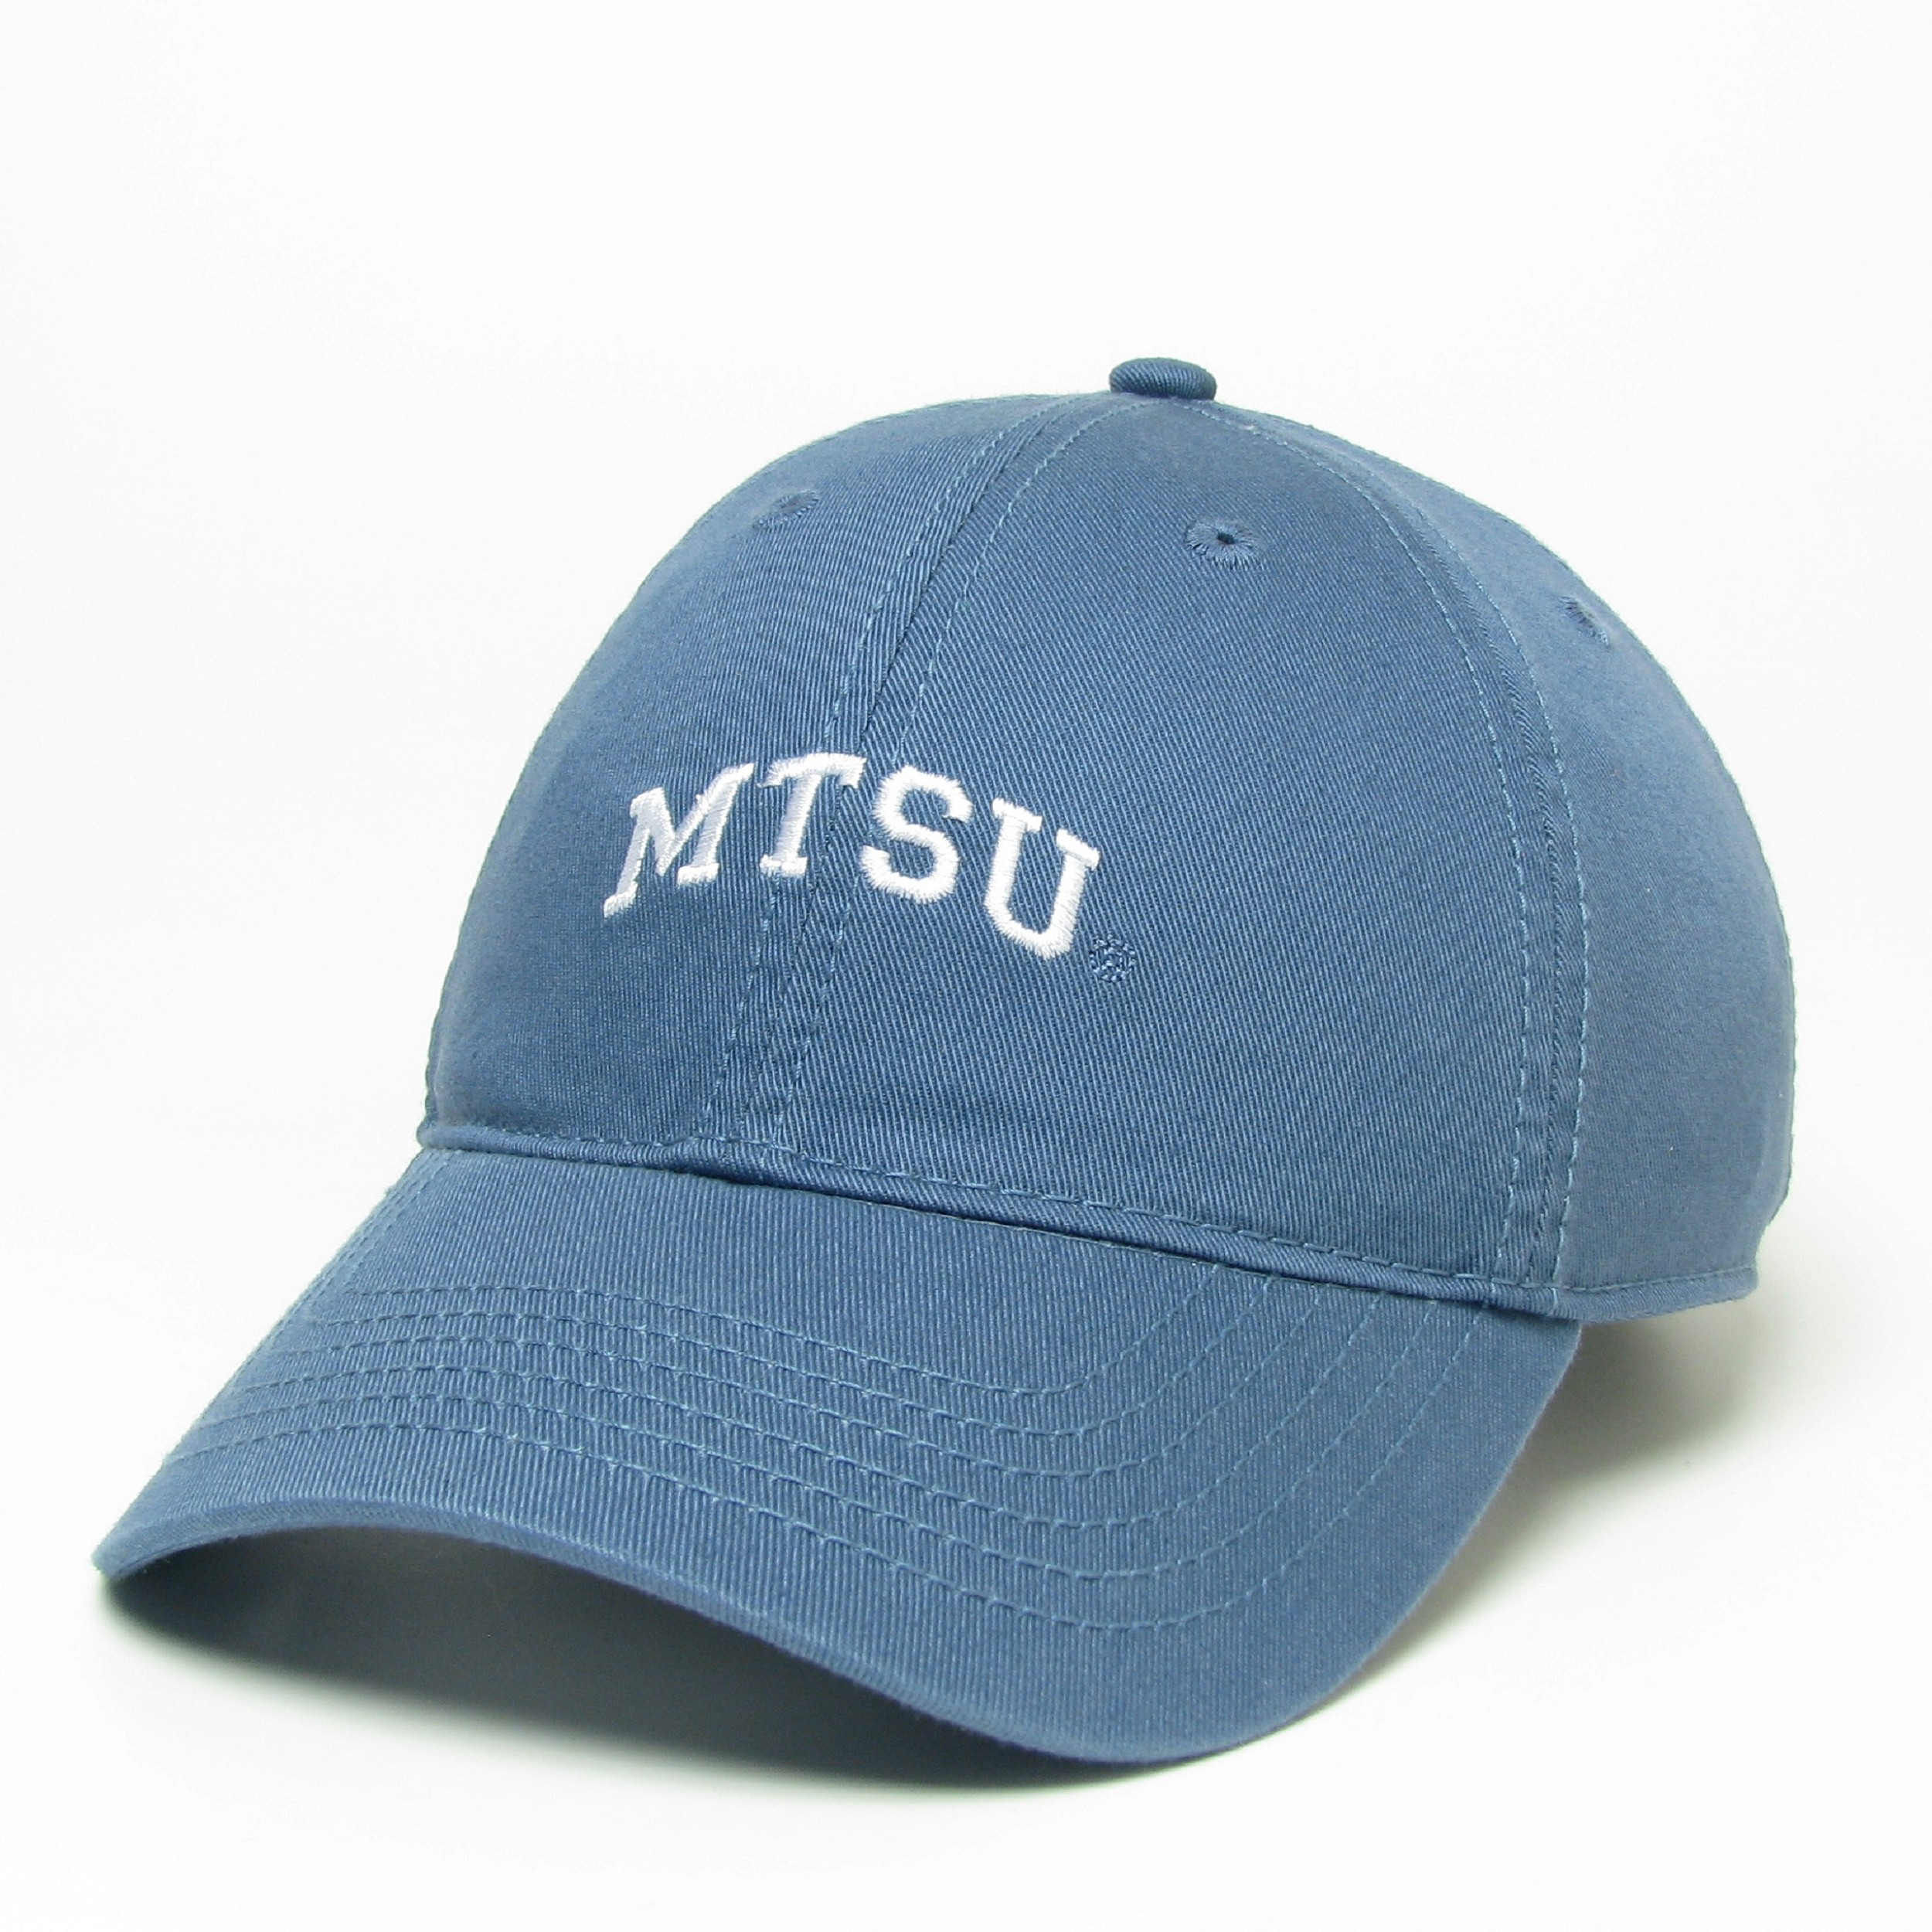 MTSU Mini Arch Relaxed Twill Hat